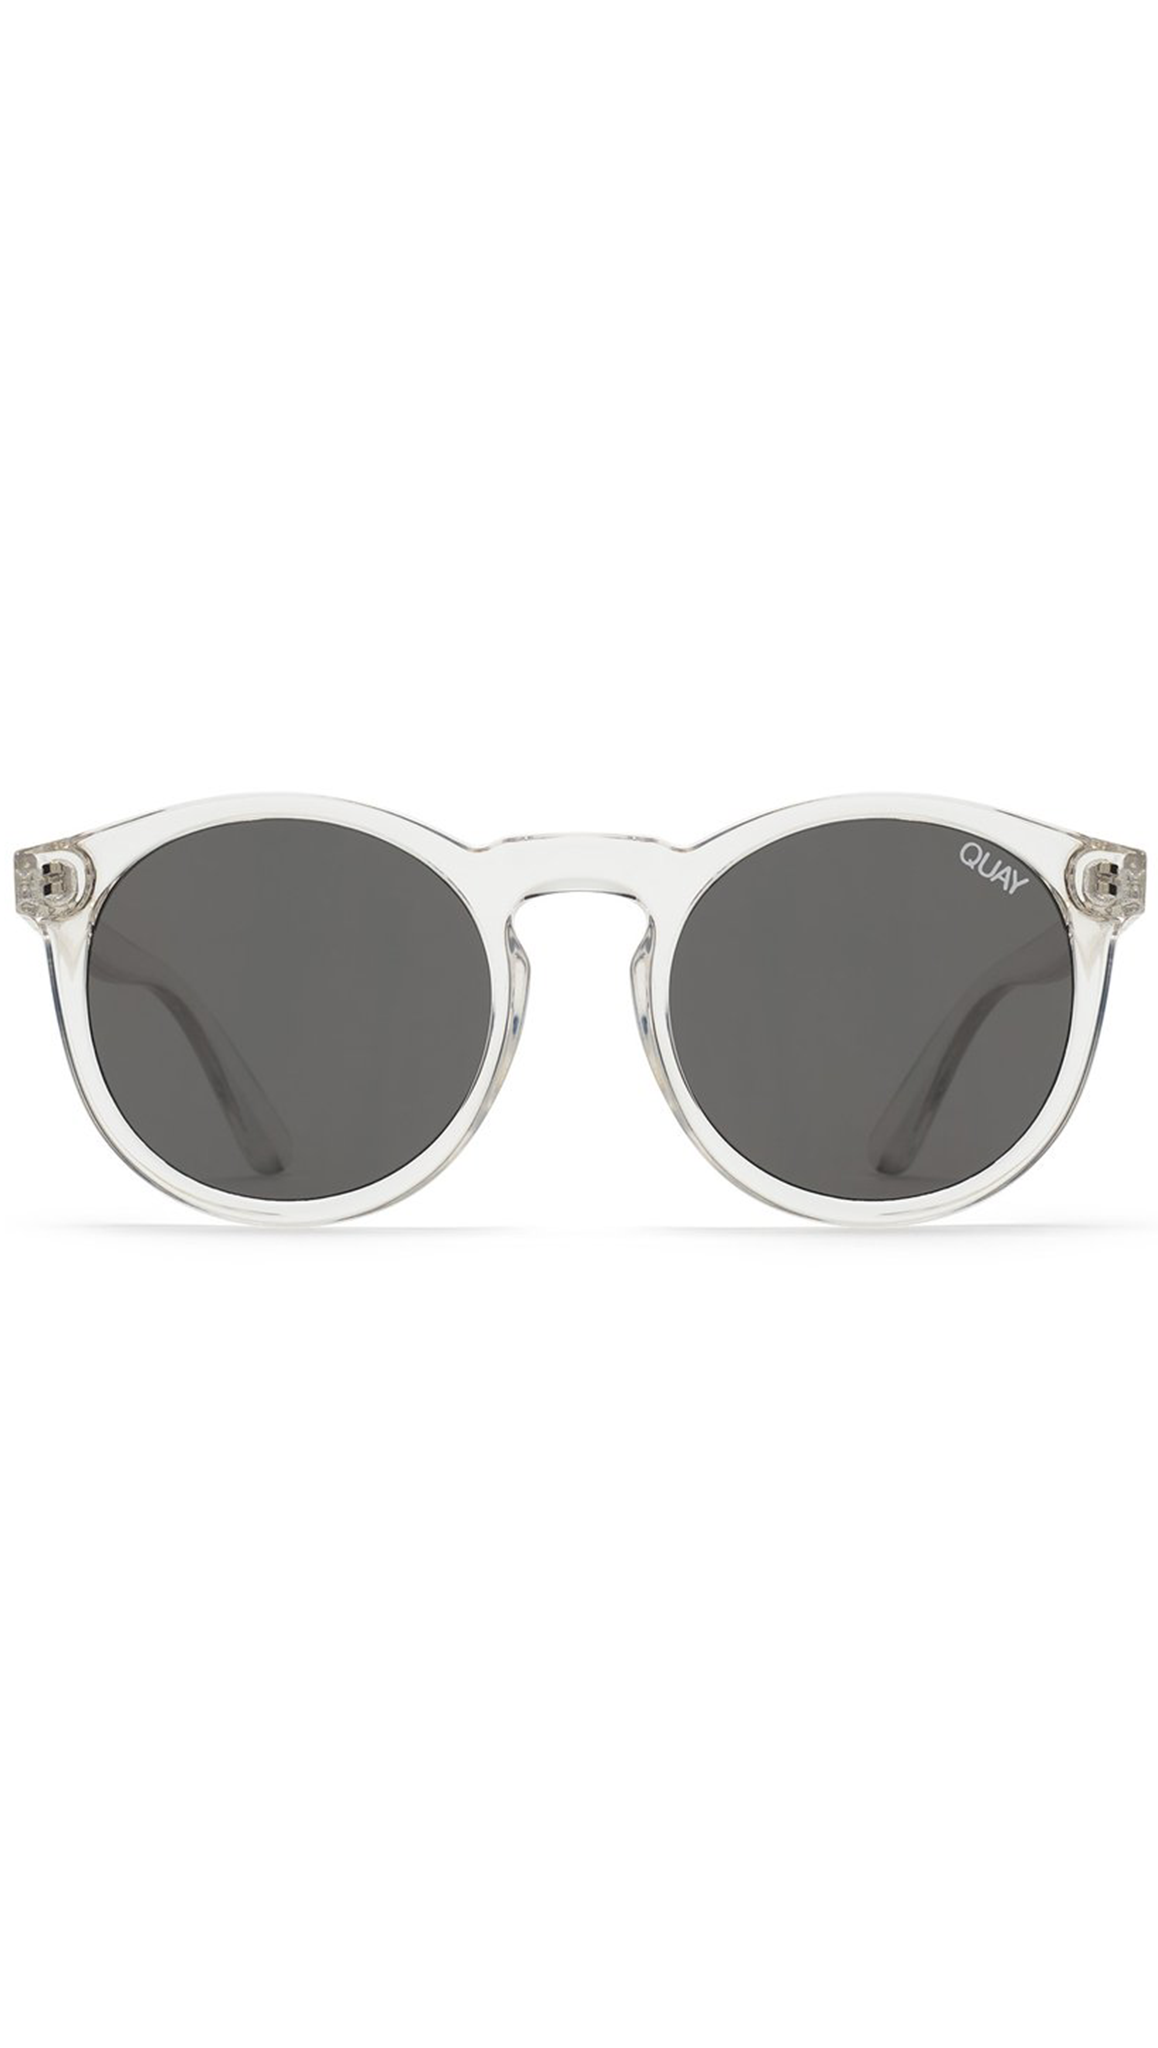 Quay Clear Frame Sunglasses